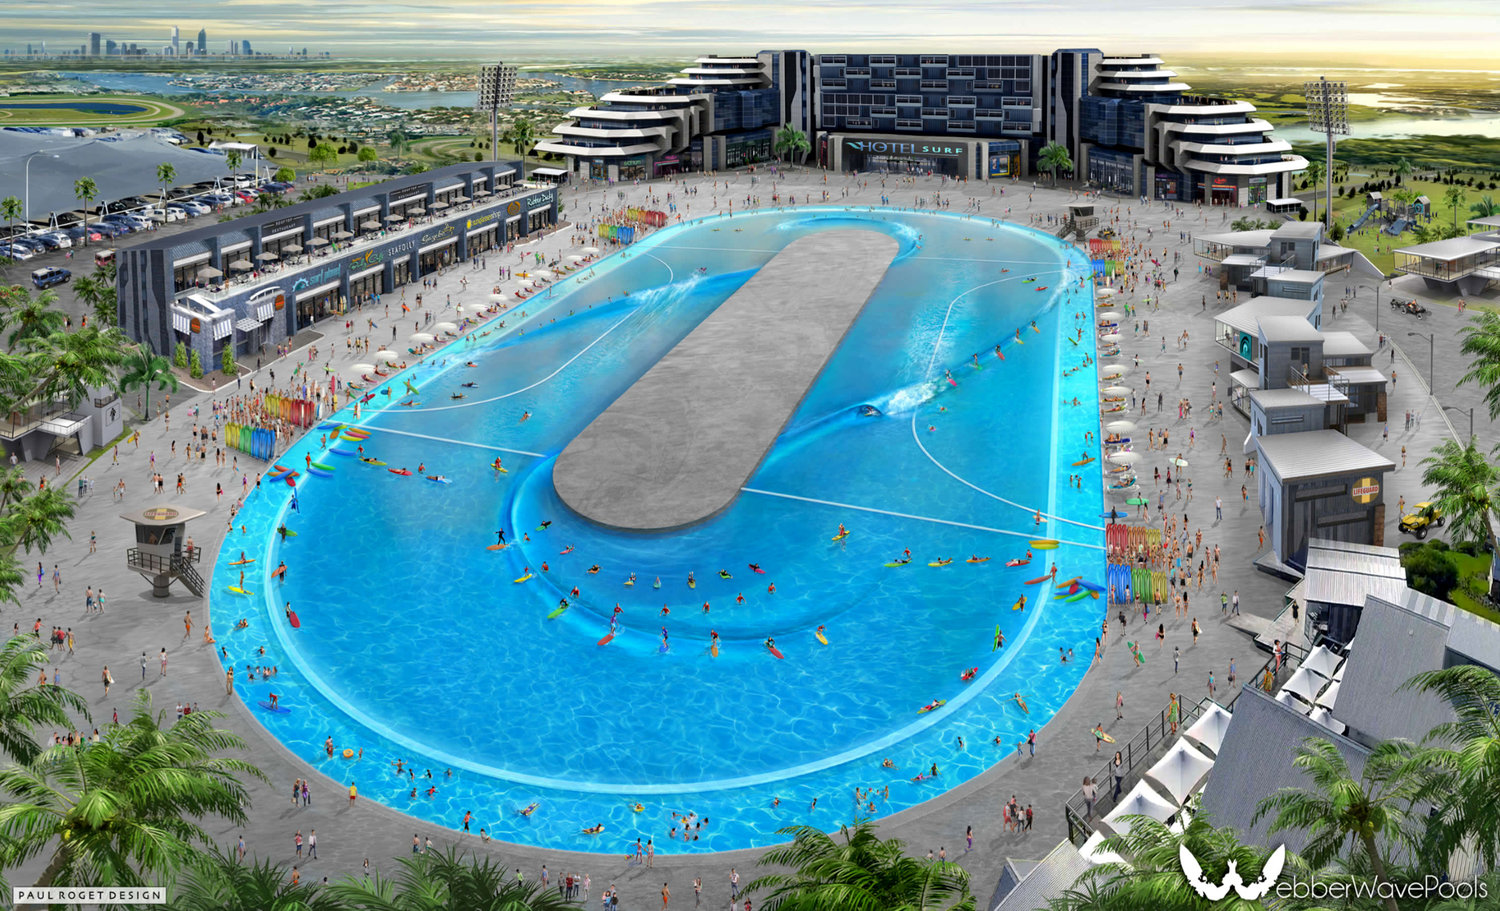 The future of wave pools according to Greg Webber... coming soon to a suburban lot near you (if you live in Queensland, that is). Photo: Greg Webber.